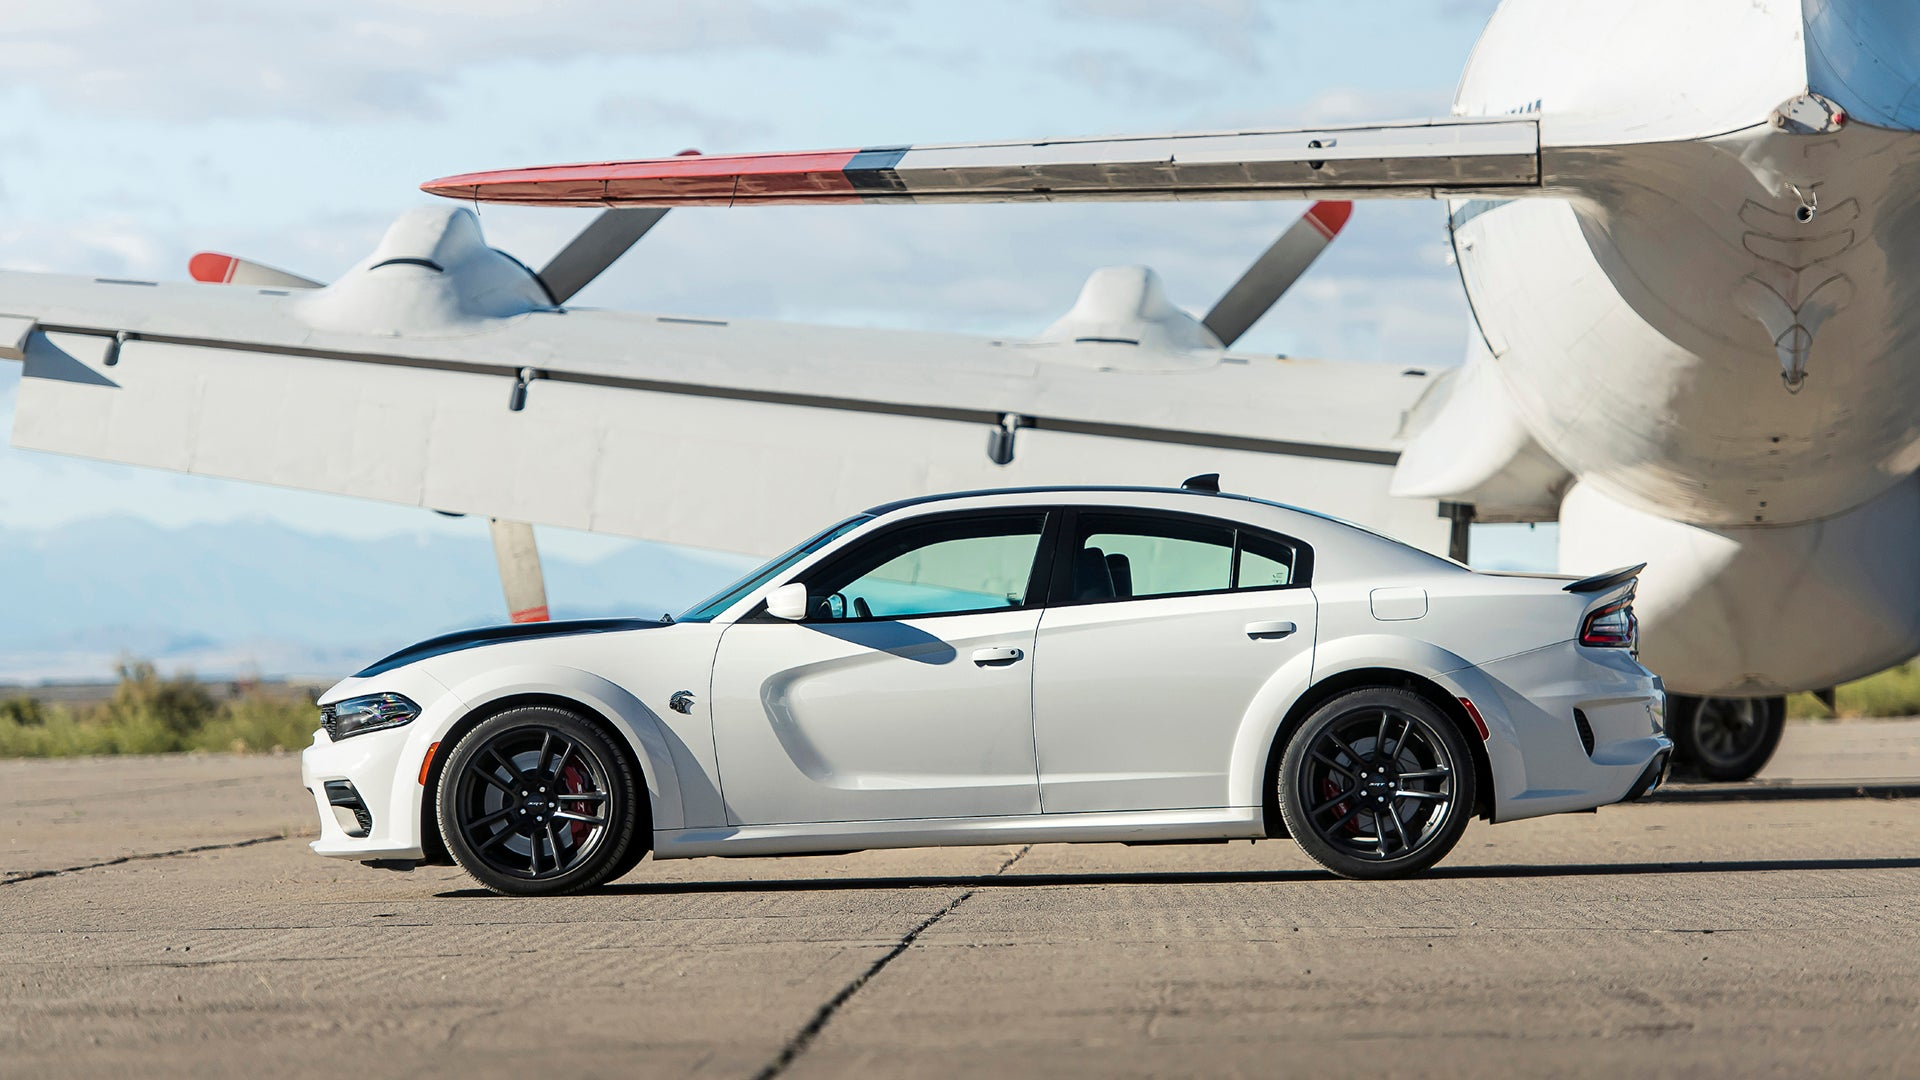 2021 Dodge Charger Srt Hellcat Redeye Widebody Review If It Ain T Broke Just Add 797 Hp